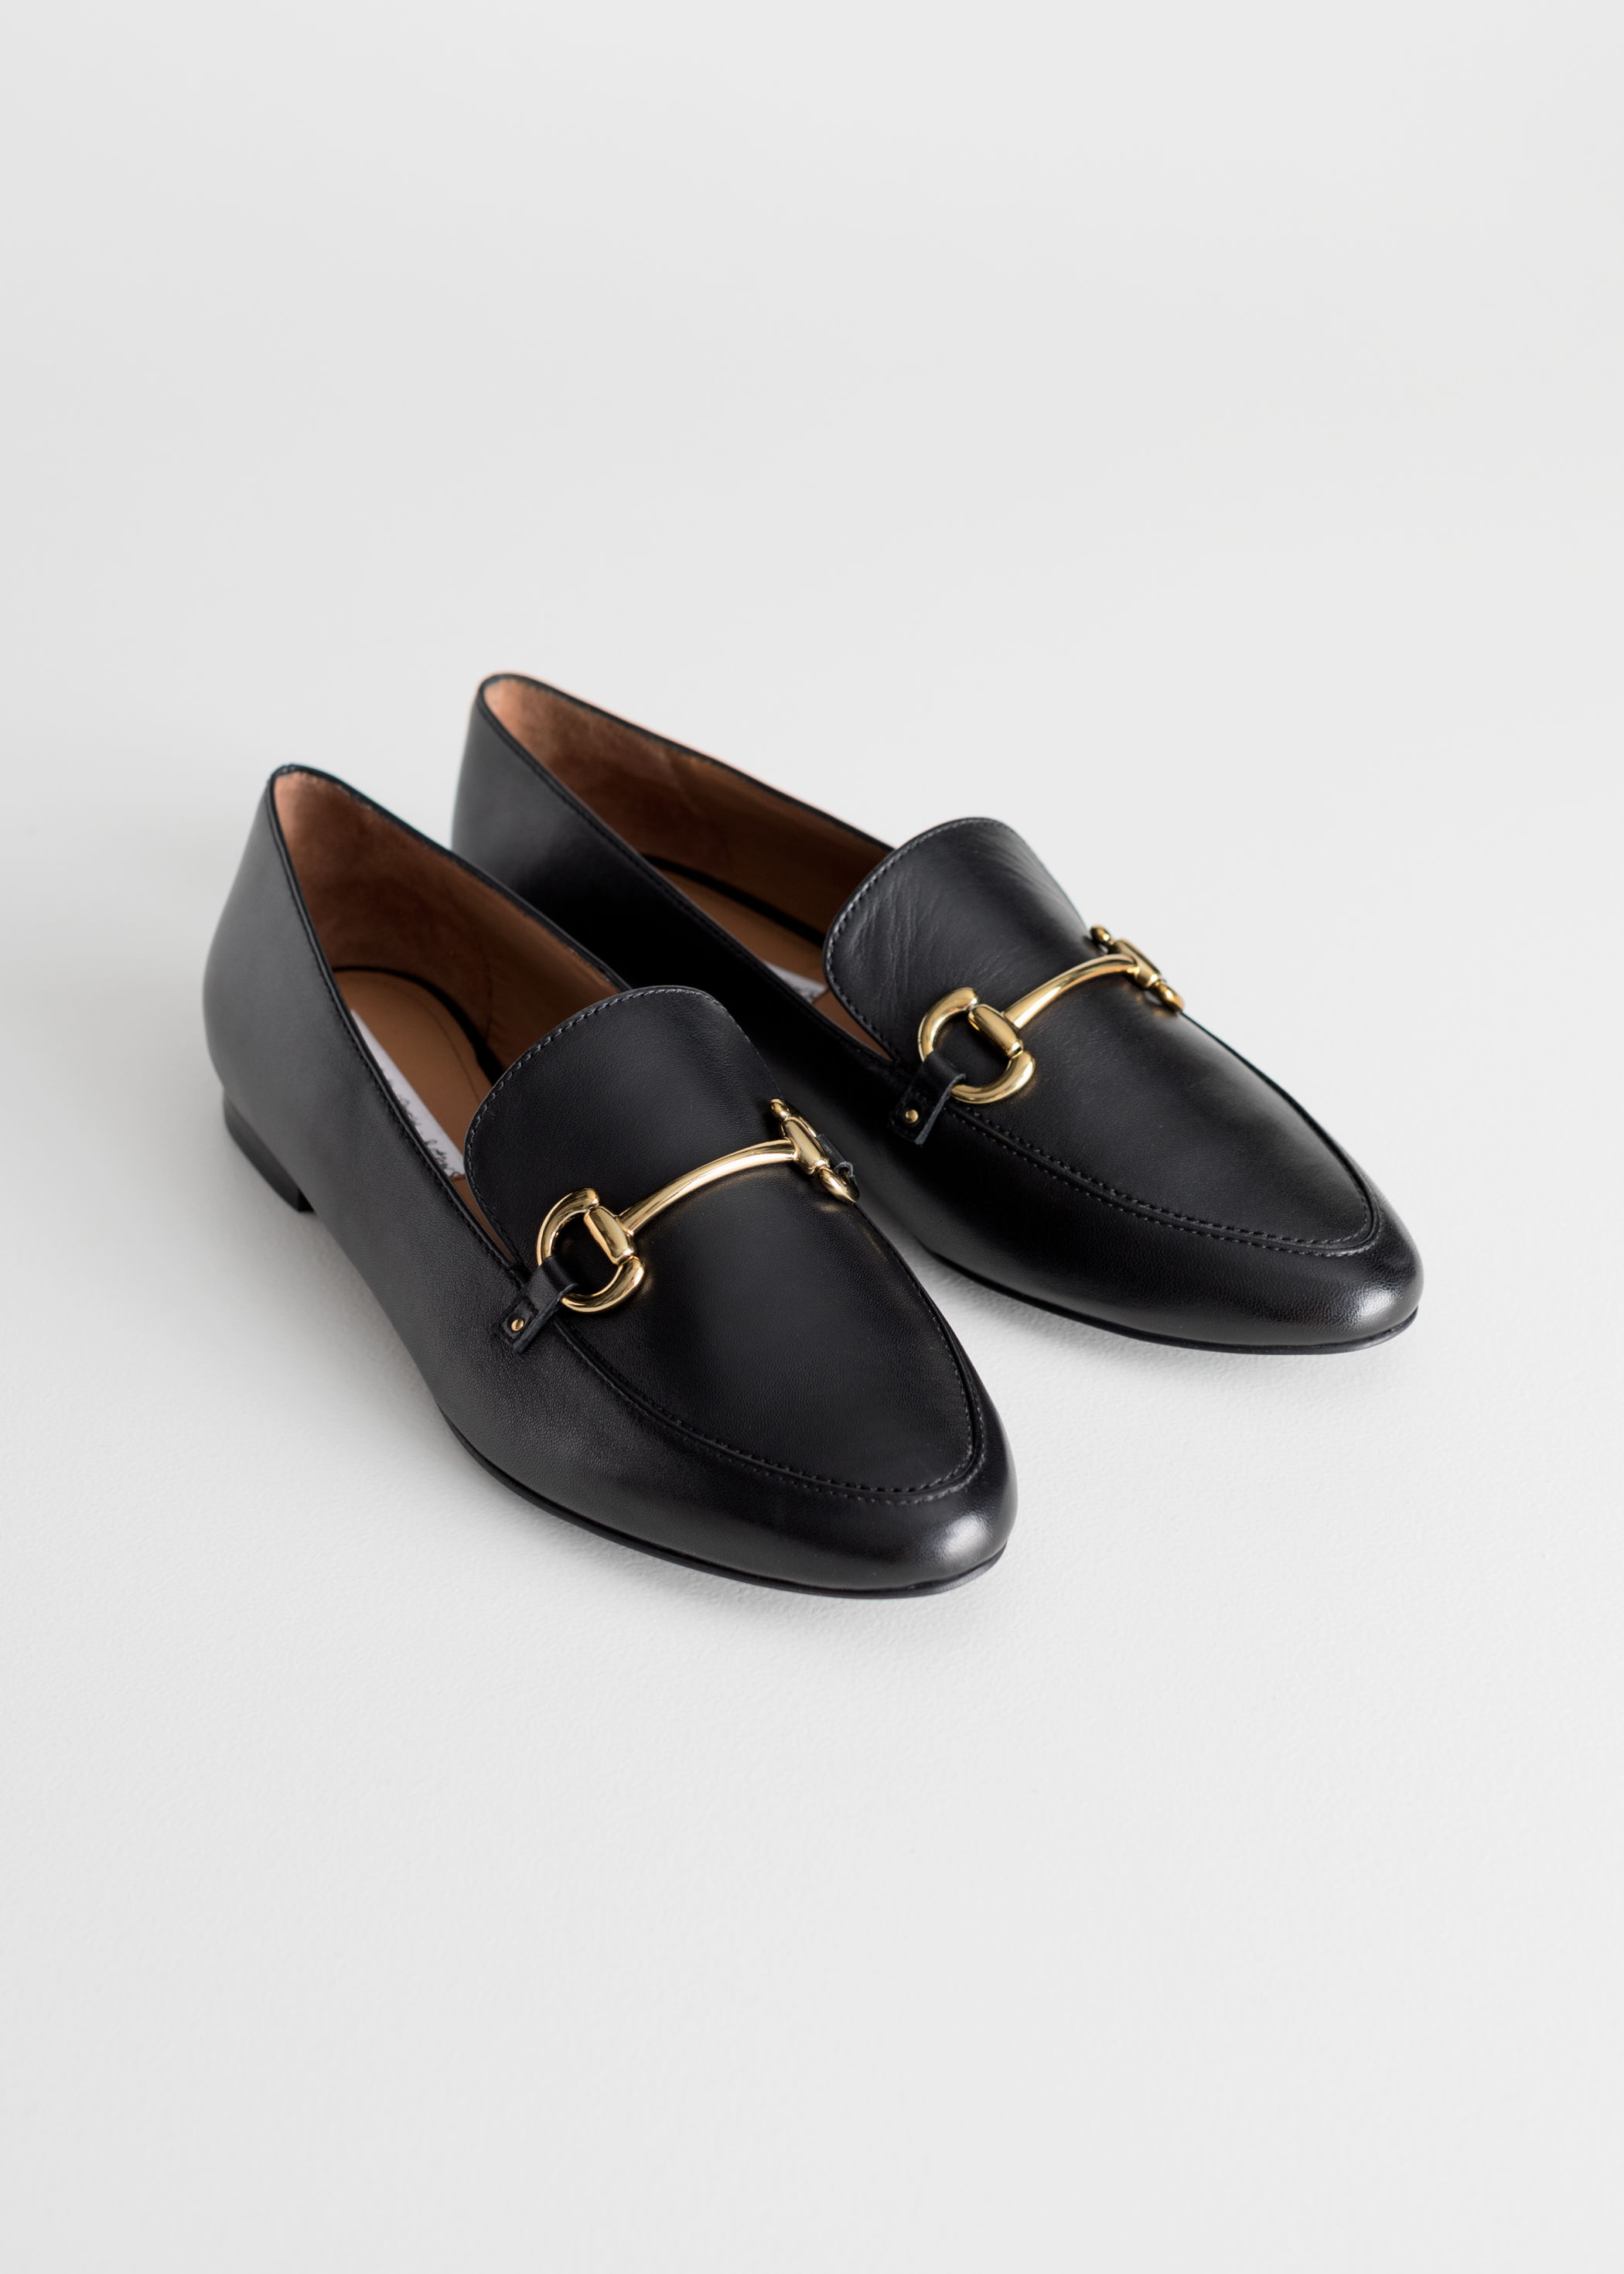 equestrian-buckle-loafer-black-leather